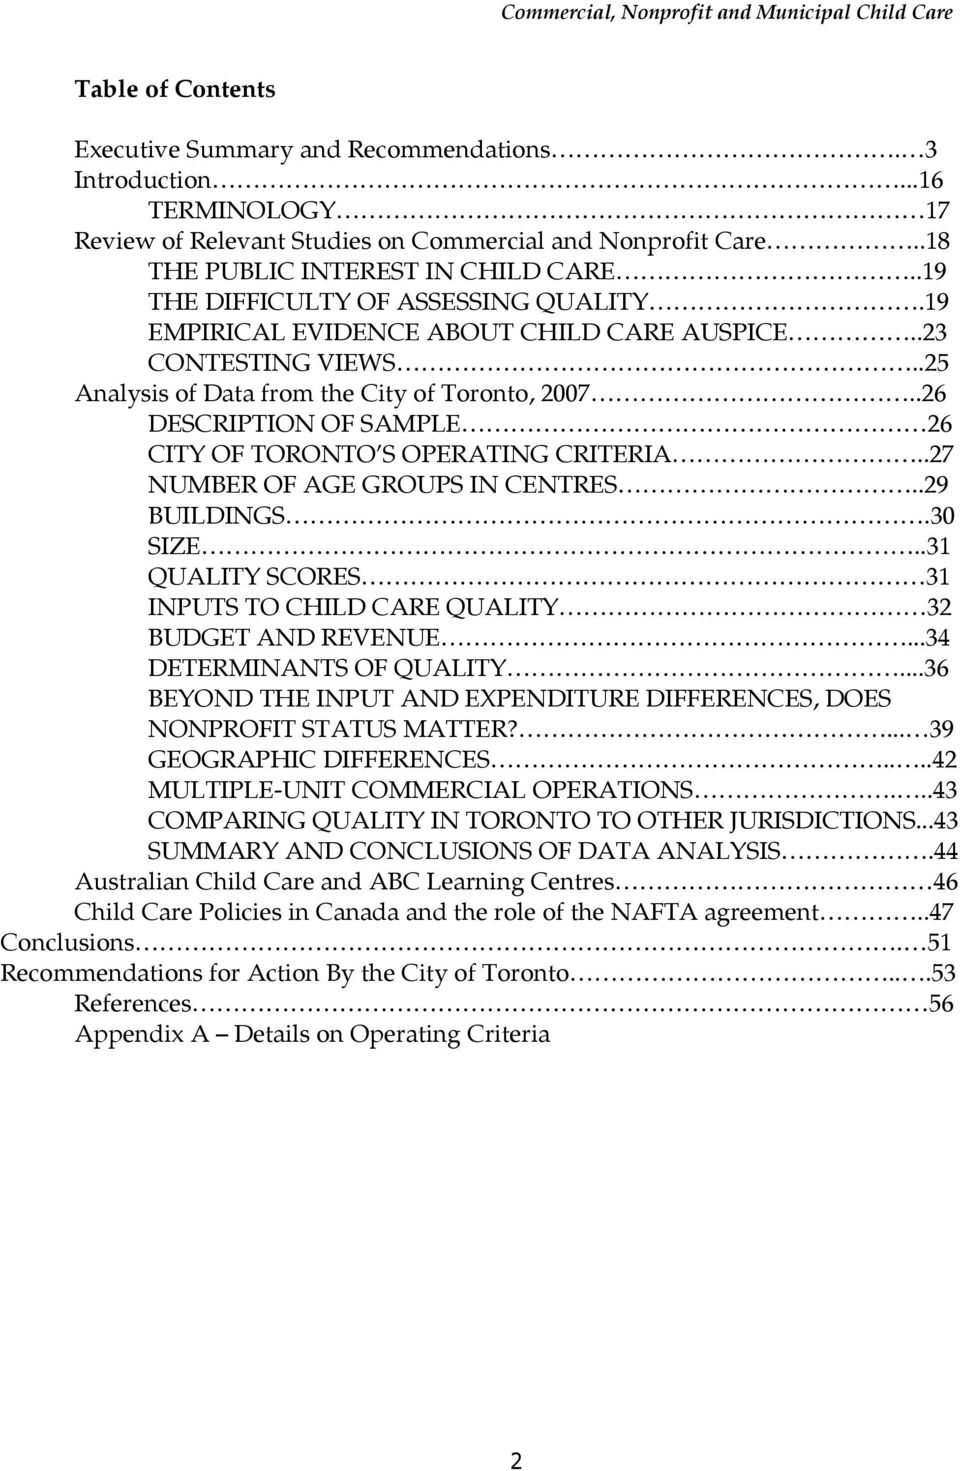 .26 DESCRIPTION OF SAMPLE 26 CITY OF TORONTO S OPERATING CRITERIA..27 NUMBER OF AGE GROUPS IN CENTRES..29 BUILDINGS.30 SIZE..31 QUALITY SCORES 31 INPUTS TO CHILD CARE QUALITY 32 BUDGET AND REVENUE.